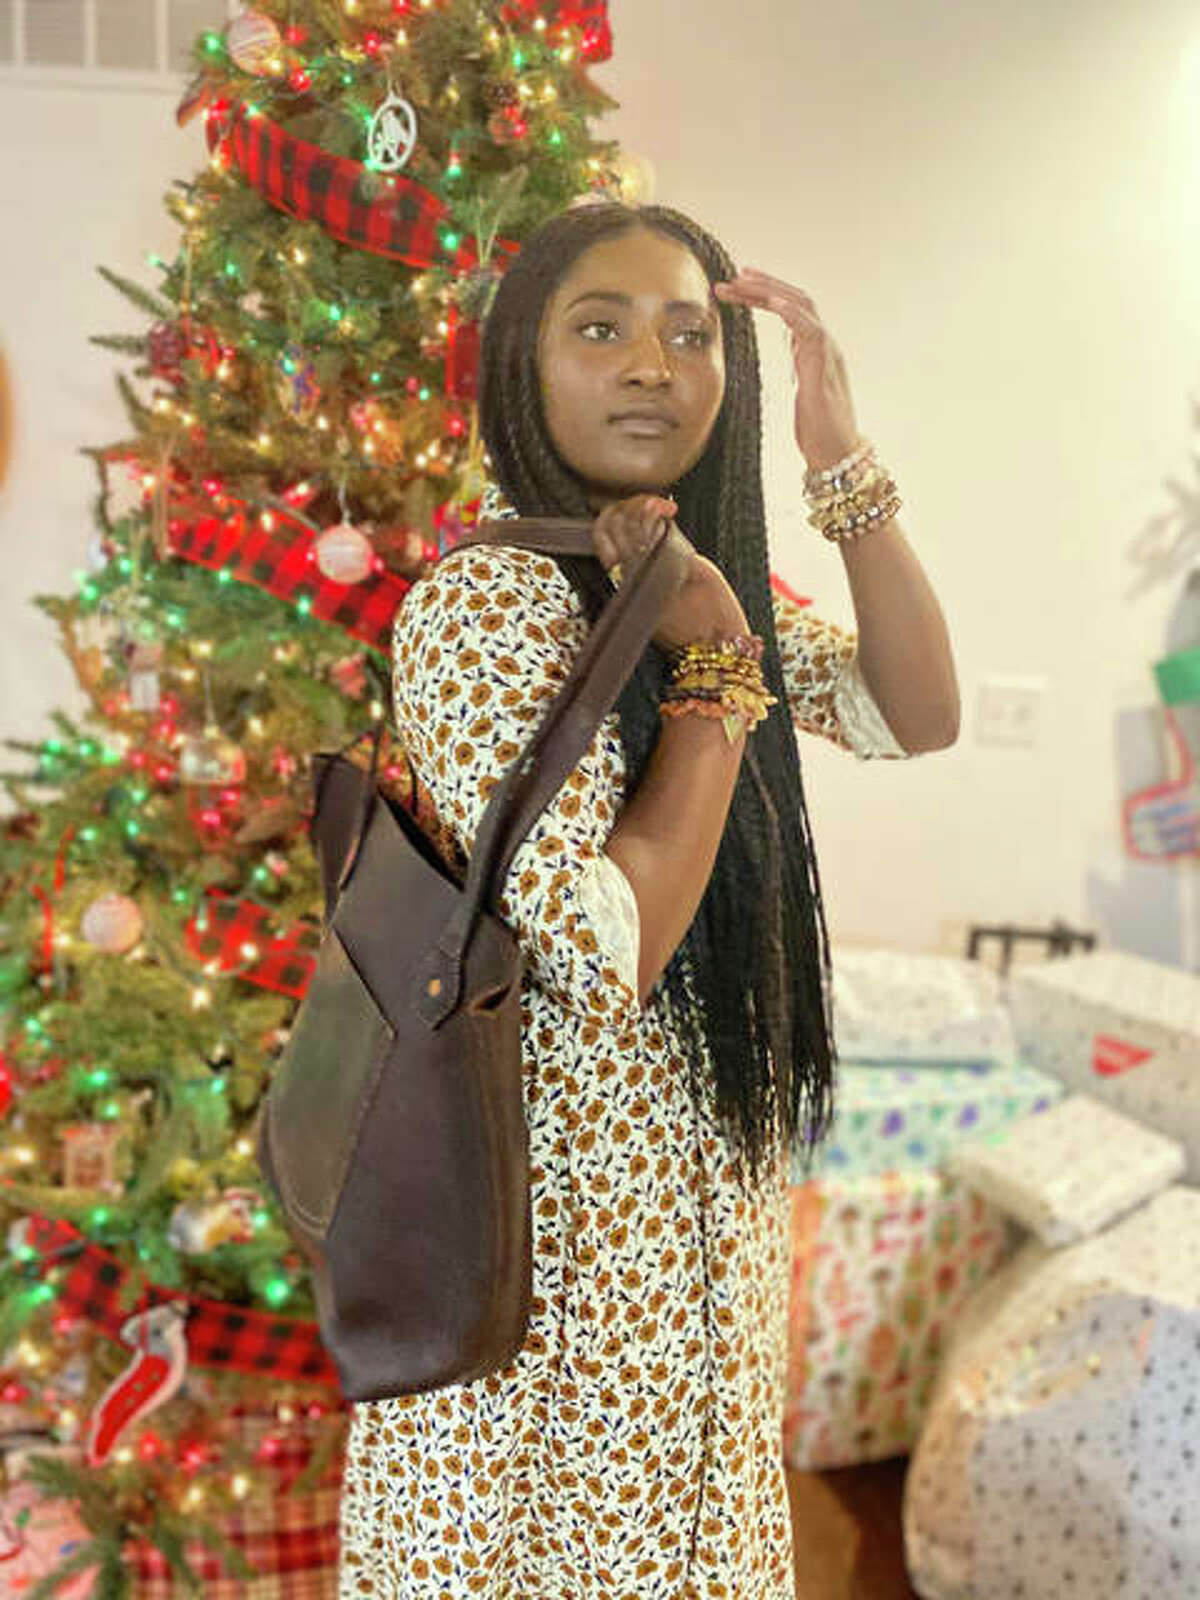 Eliana McBee, 23, a native of Haiti who lives with her husband in Godfrey, near her parents, Natalie and Michael Runyon, and nine siblings, two of whom the Runyons also adopted from Haiti, shows a bag from Haiti Made. Every sale at the annual Gifts That Give Hope Holiday Pop-Up helps women business owners stay employed and out of poverty.